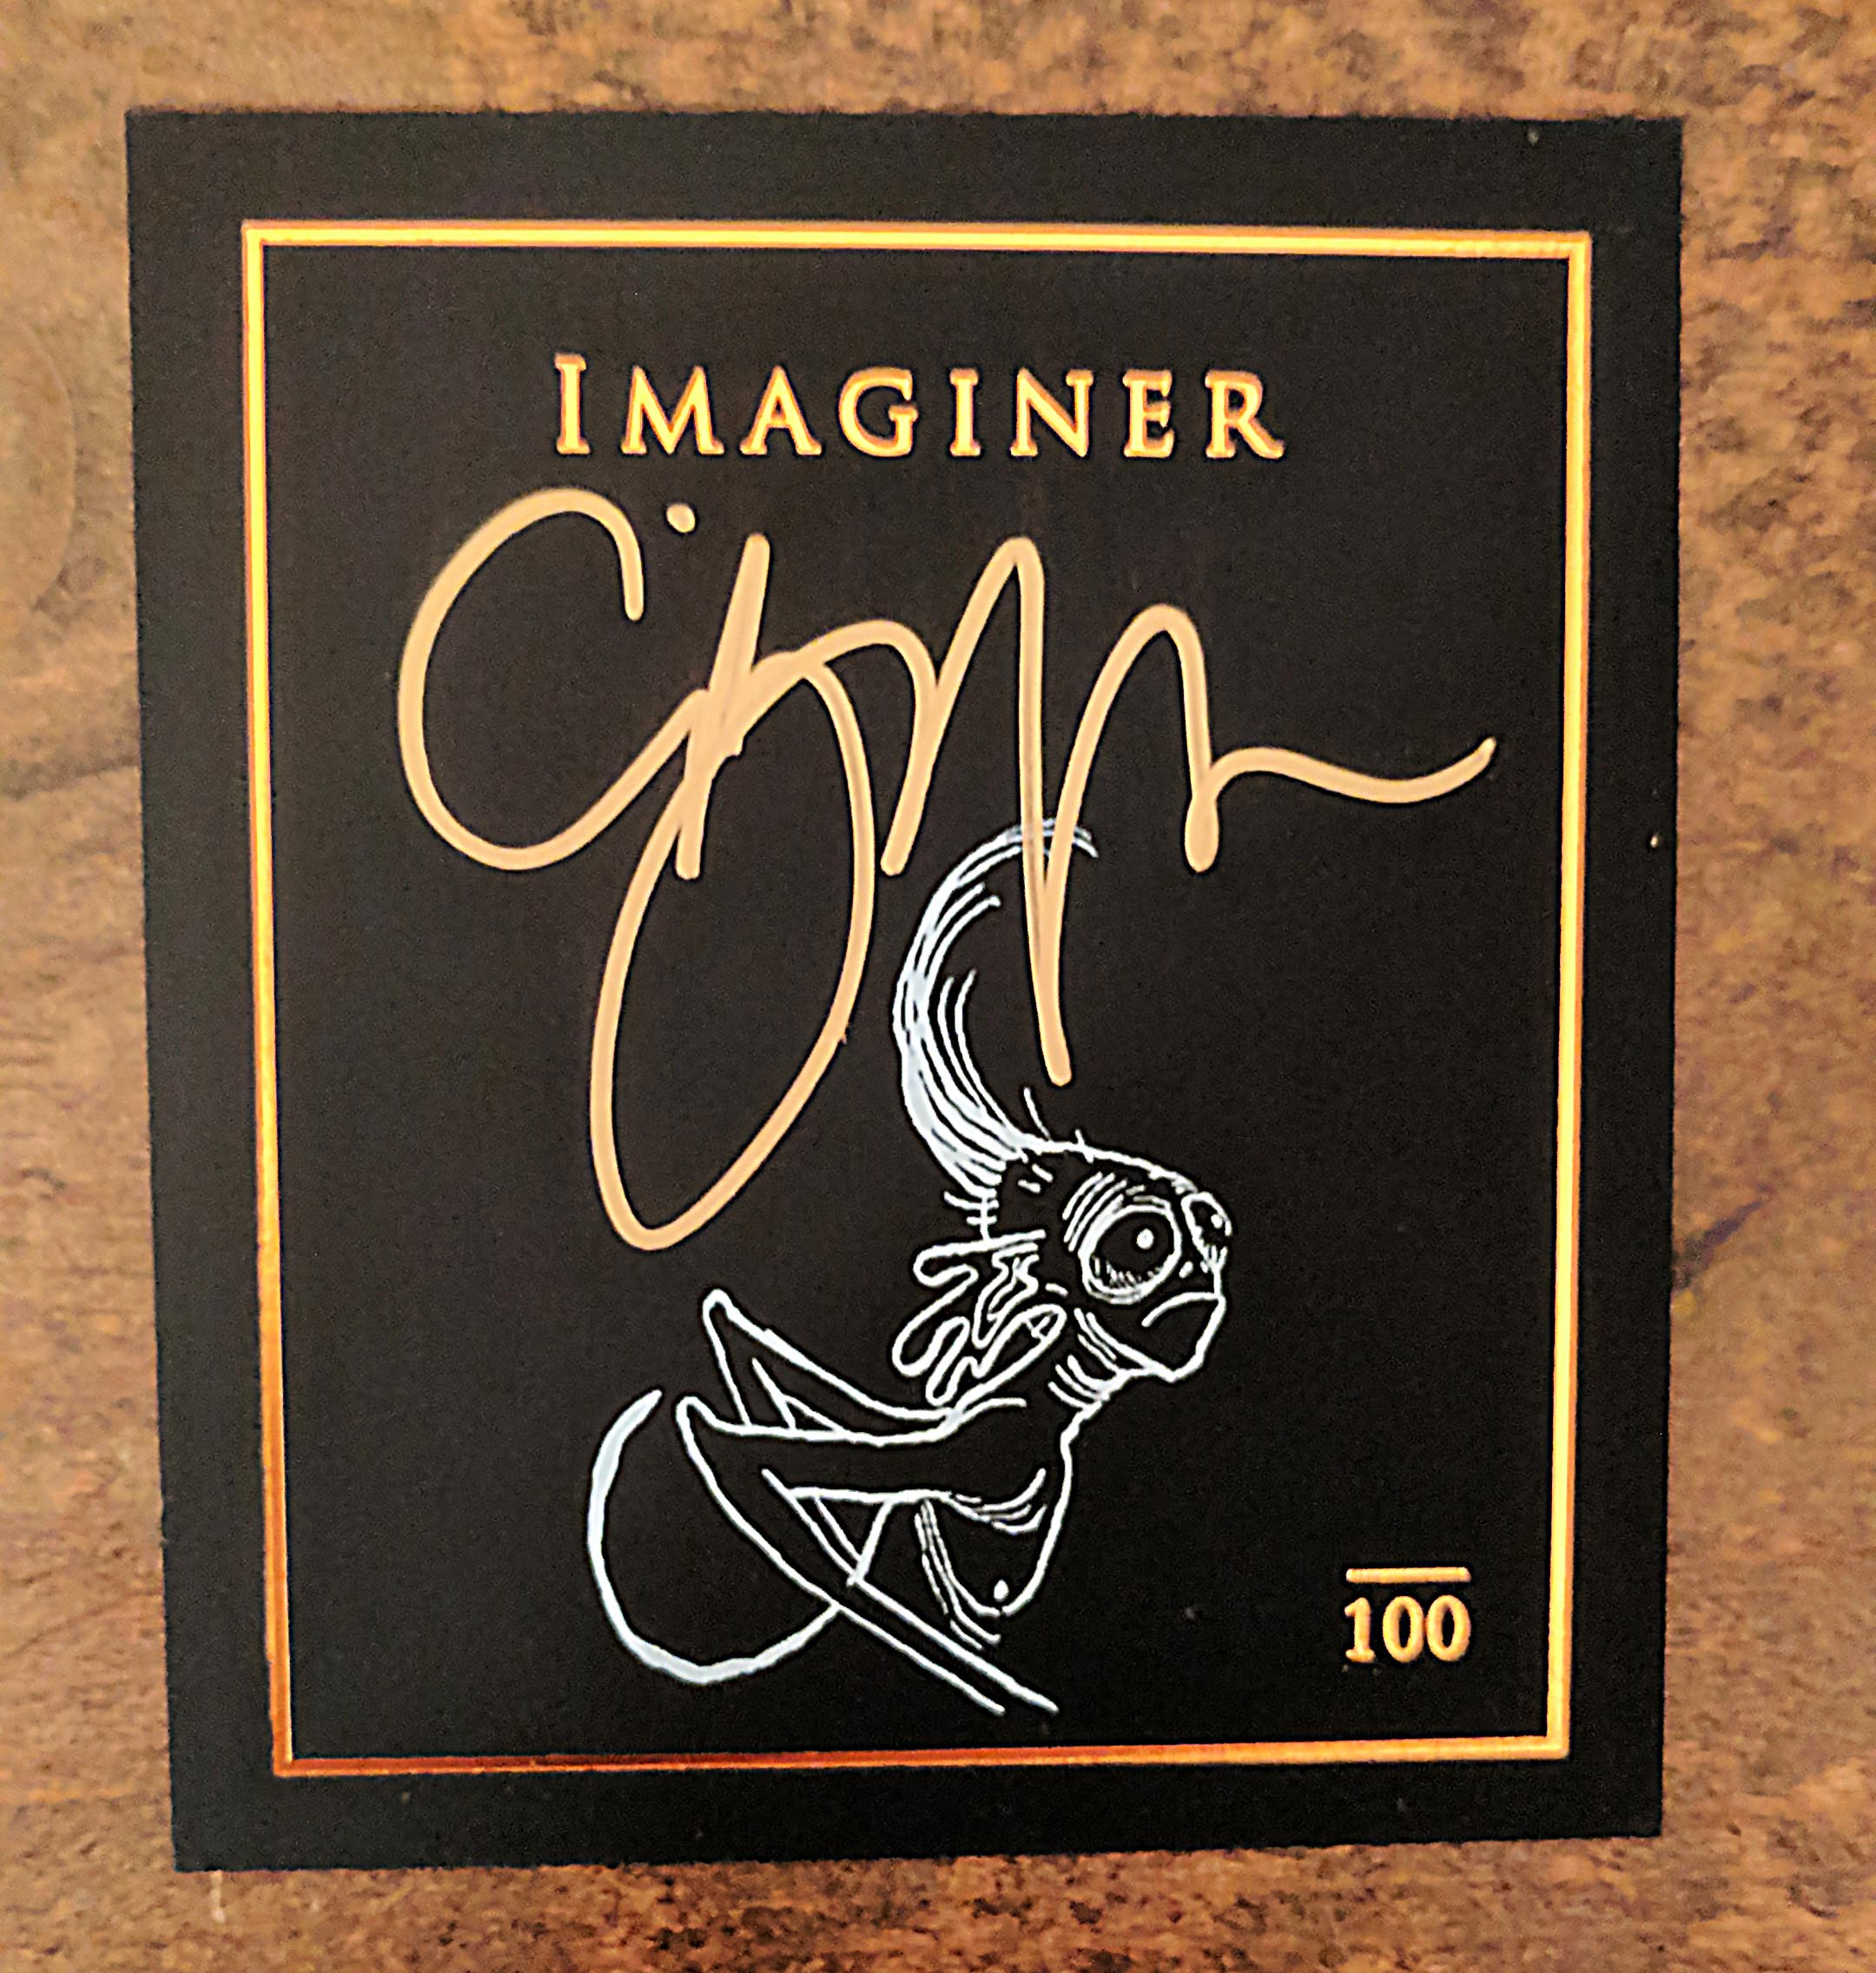 Bookplate for deluxe copies of Imaginer 5, signed by Clive